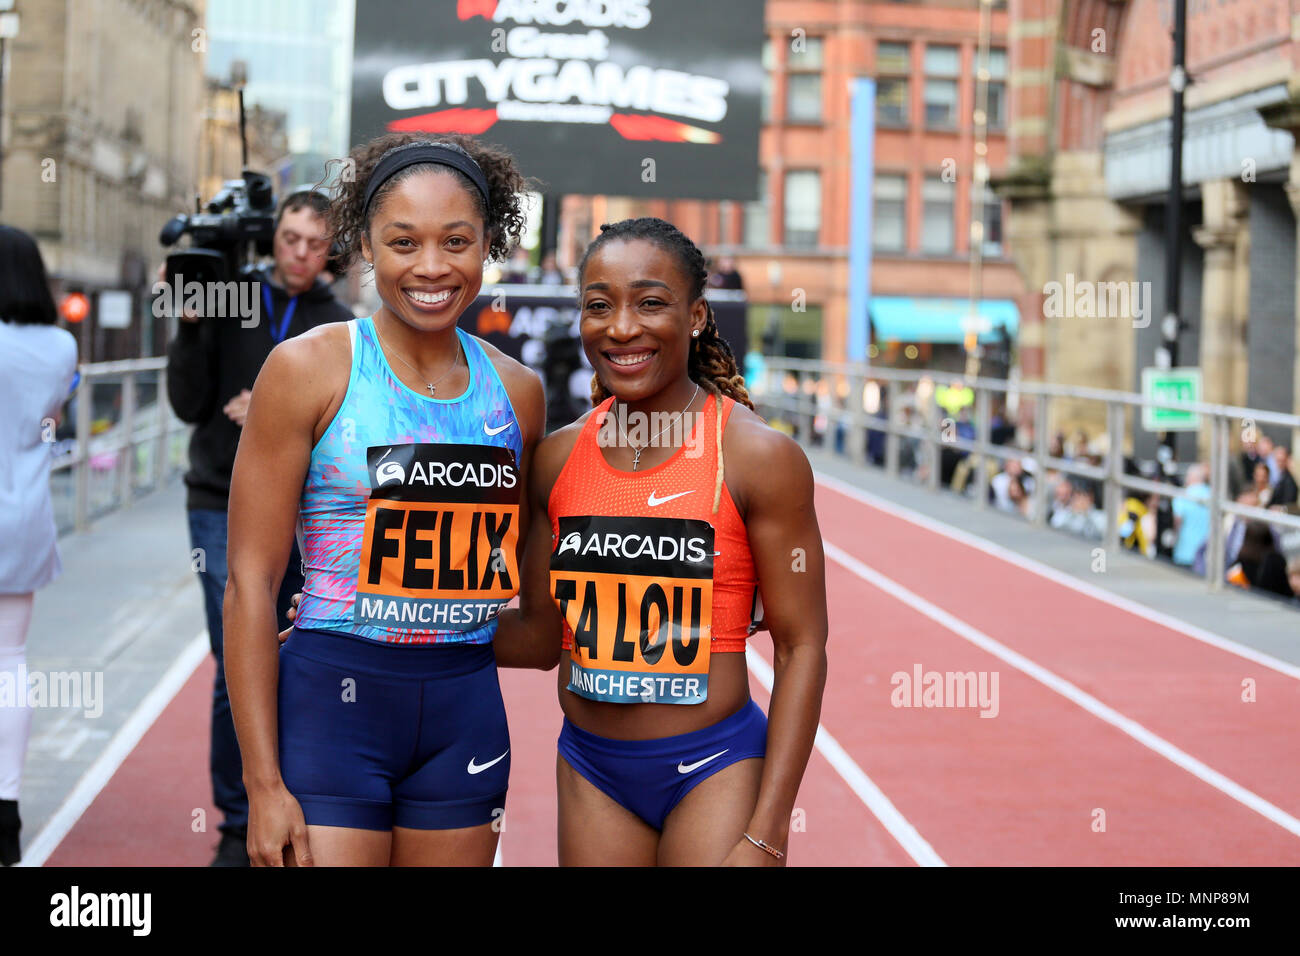 Manchester, UK. 18th May, 2018. Allyson Felix and Marie Josee Ta Lou at the Arcadis Great City Games, Manchester,18th May, 2018 (C)Barbara Cook/Alamy Live News - Stock Image